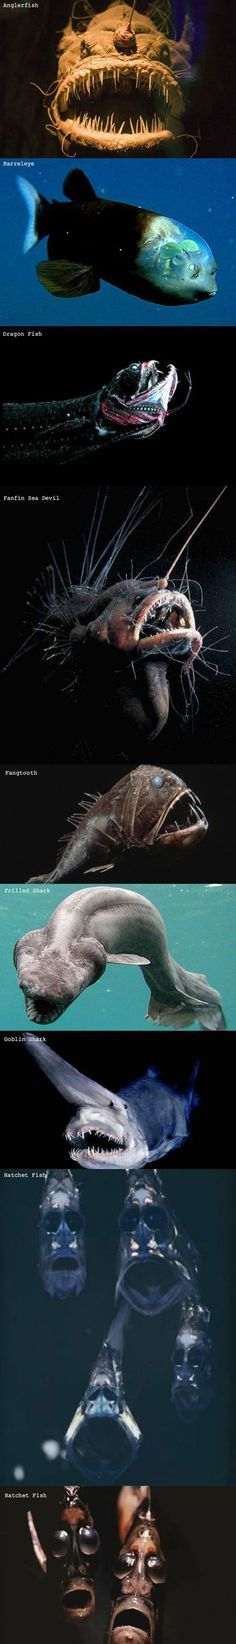 The Ocean Can Be So Scary